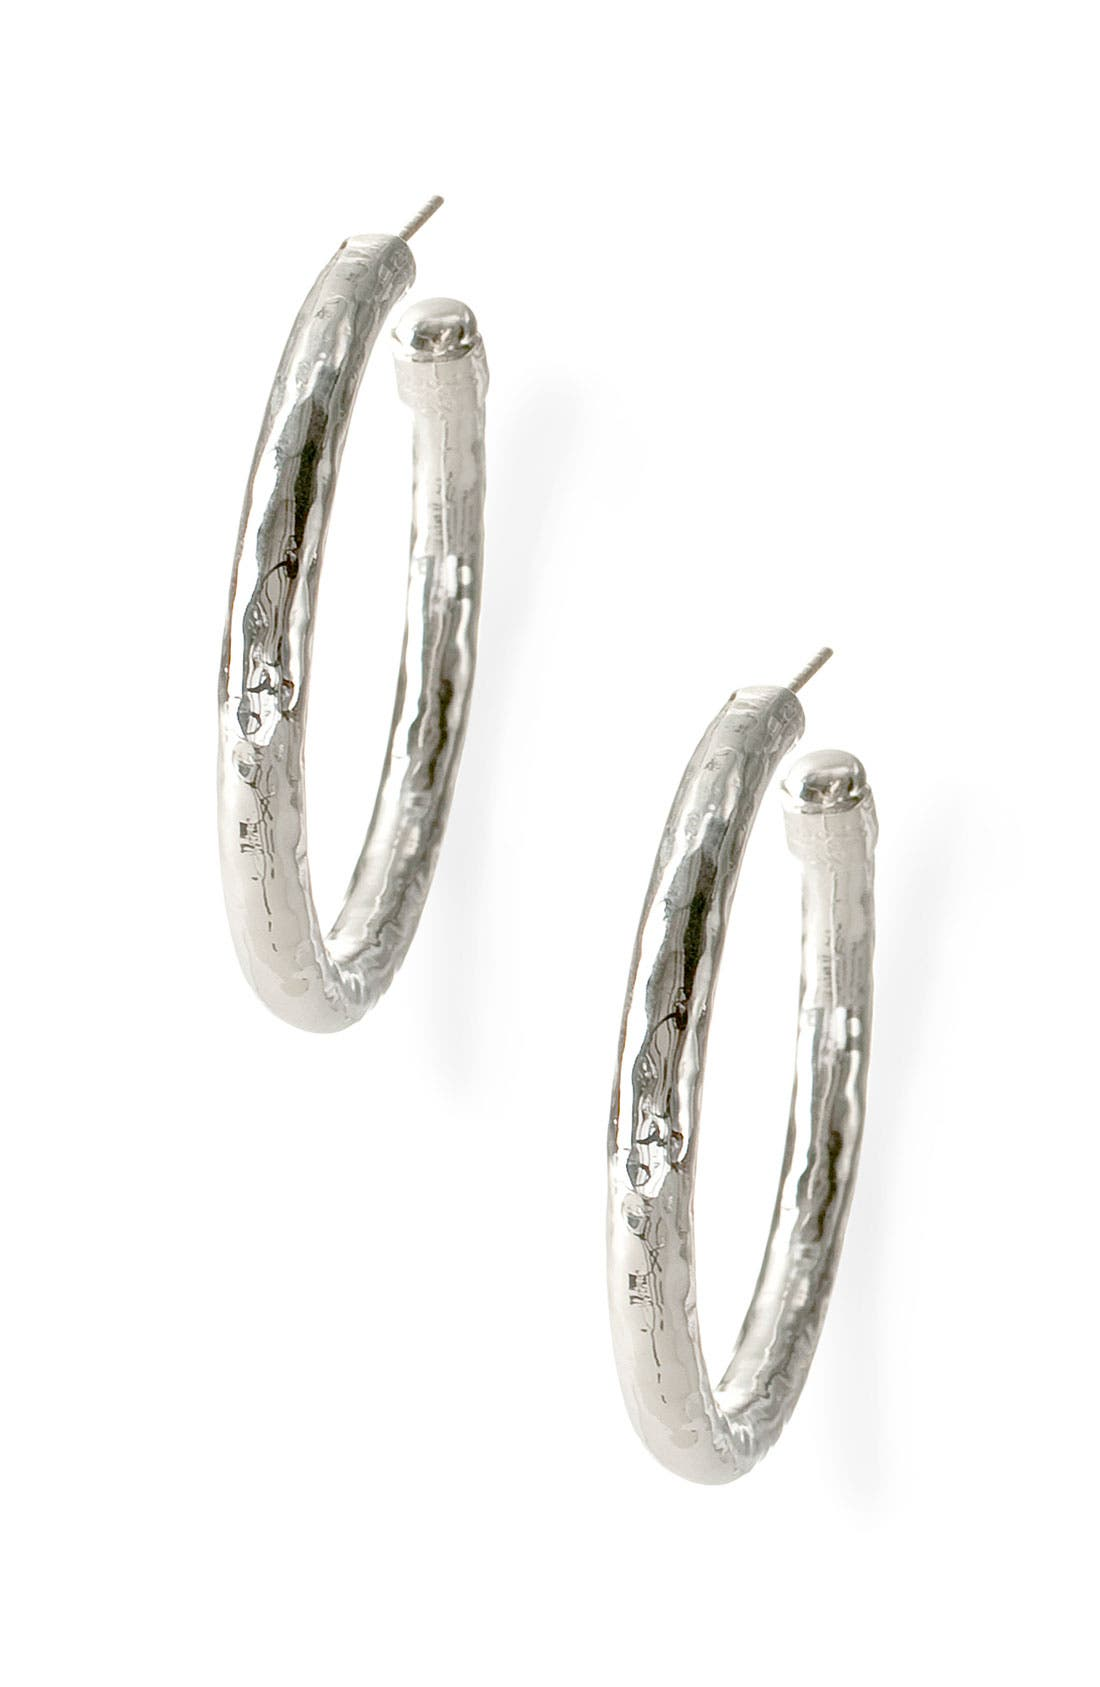 Ippolita 'Glamazon - Number 3' Skinny Hammered Hoop Earrings